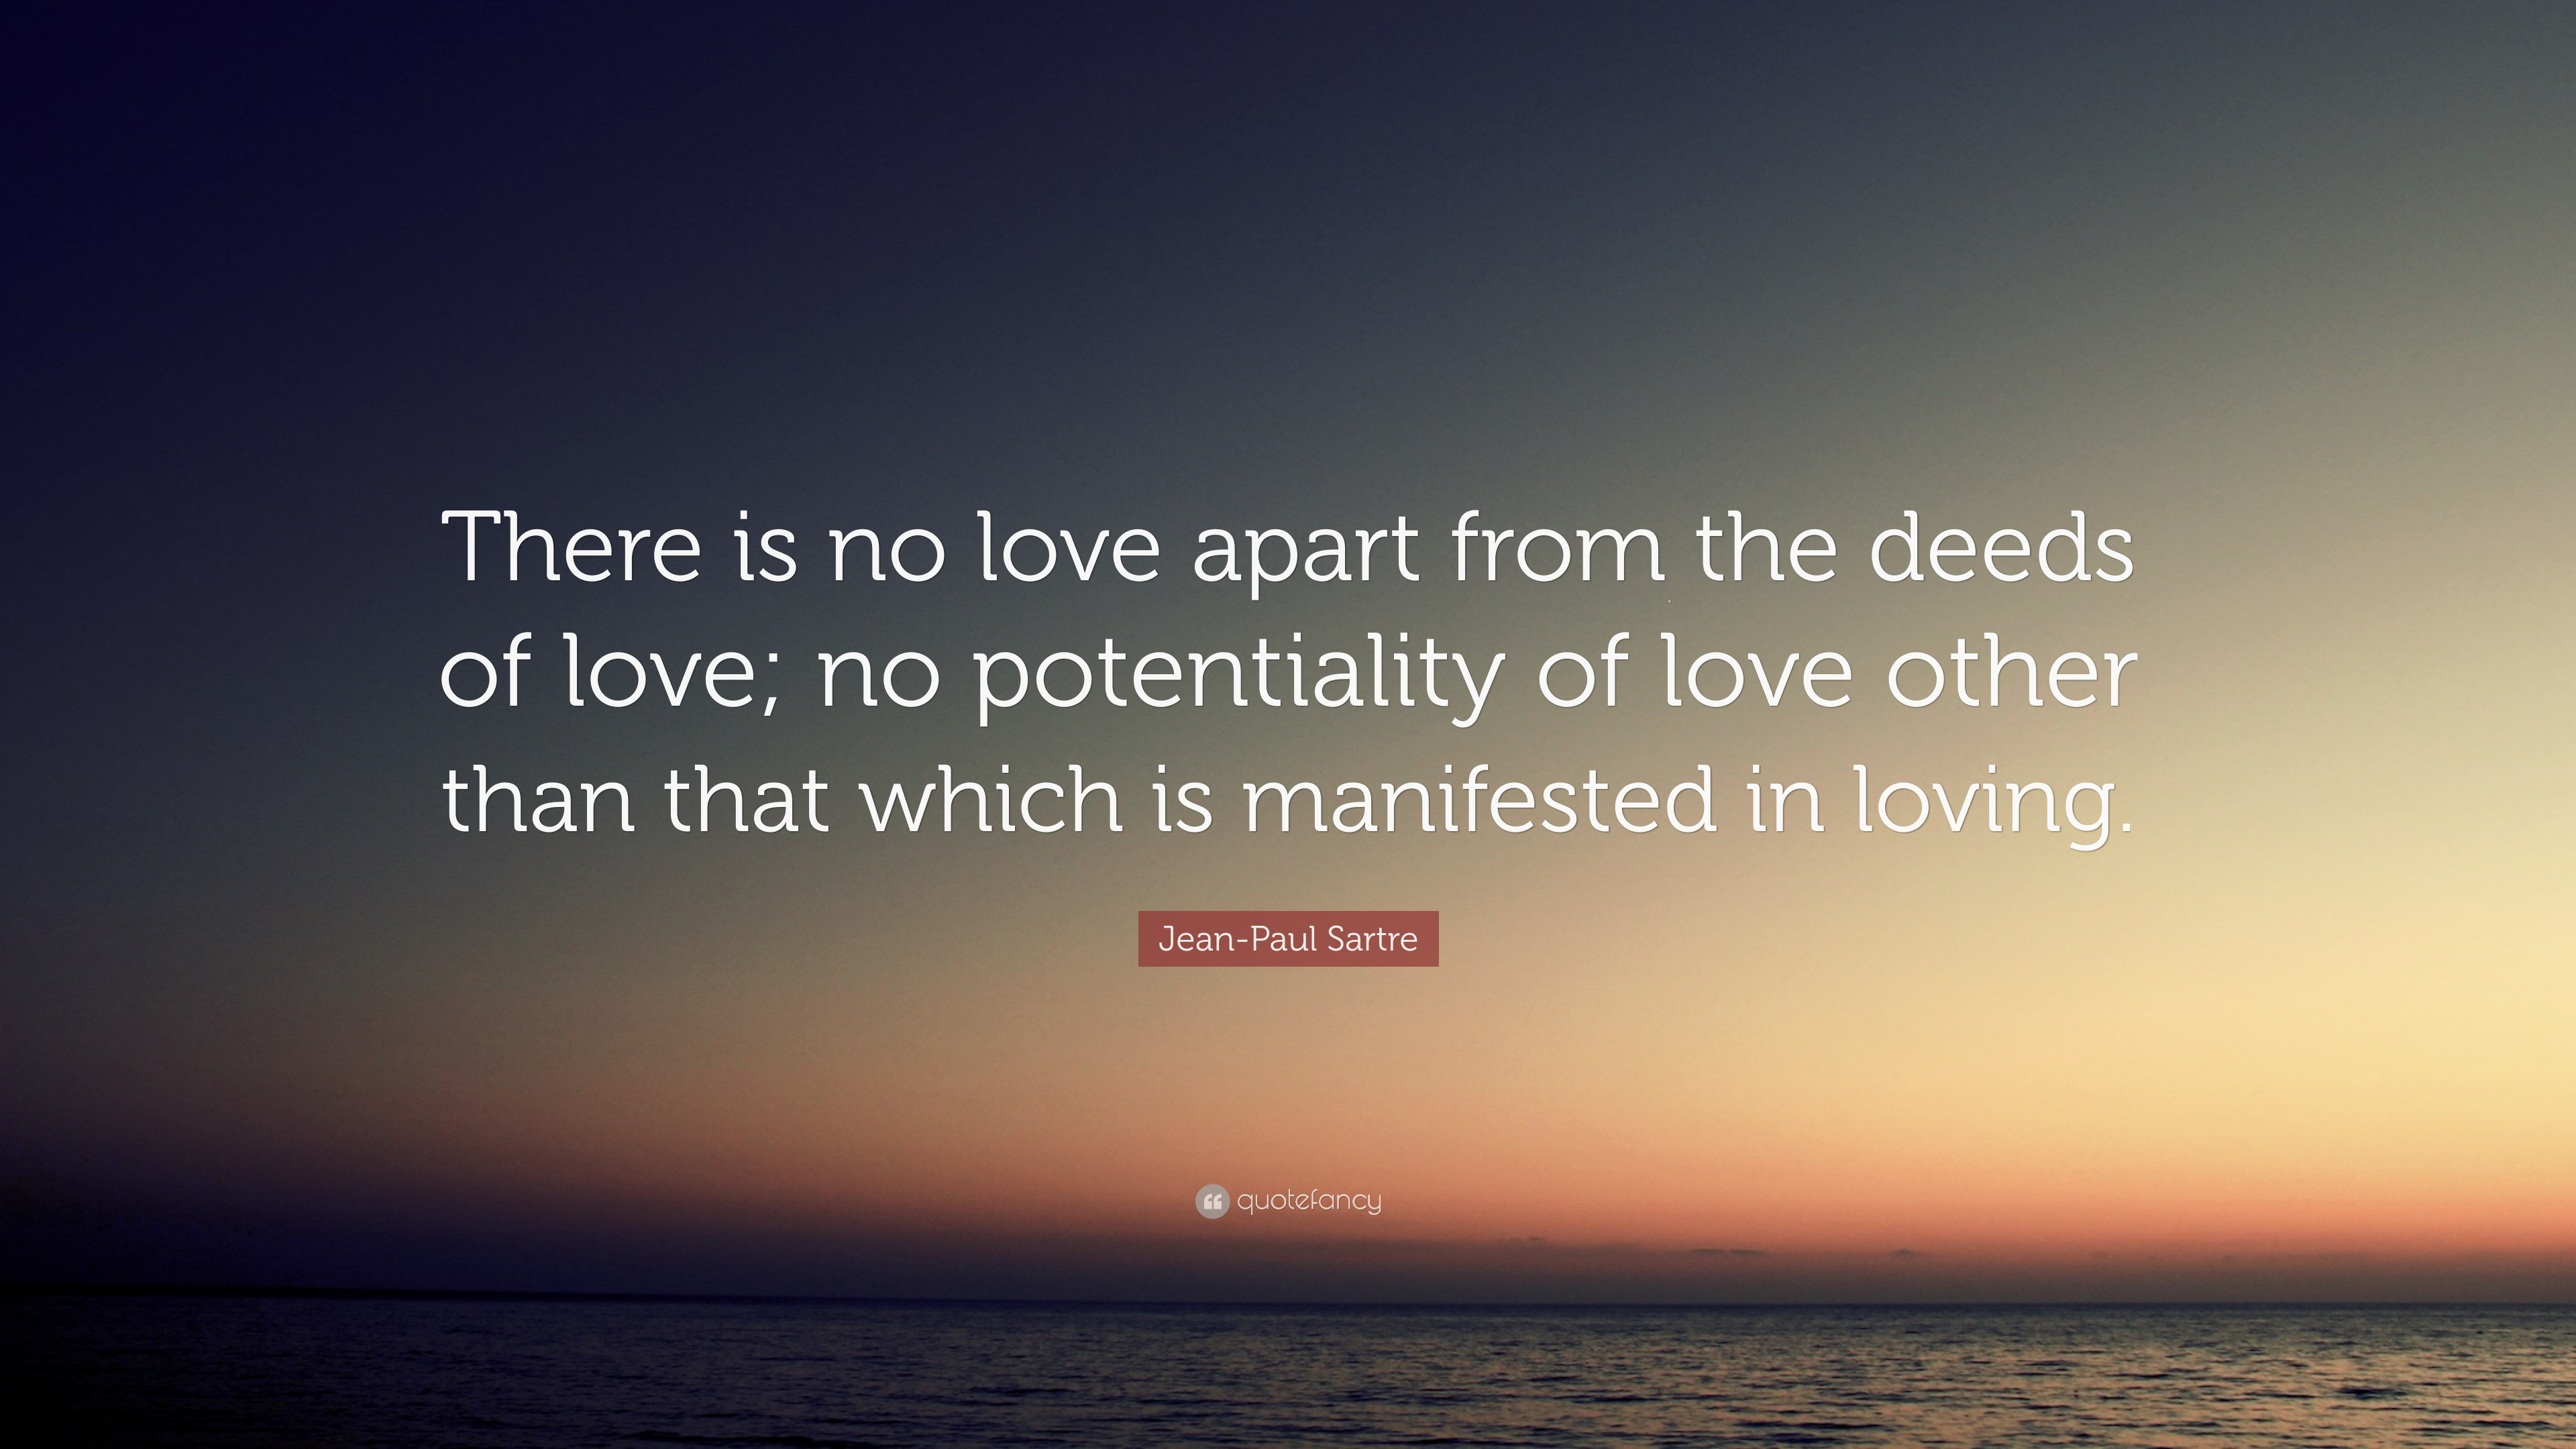 Jean Paul Sartre Quote There Is No Love Apart From The Deeds Of